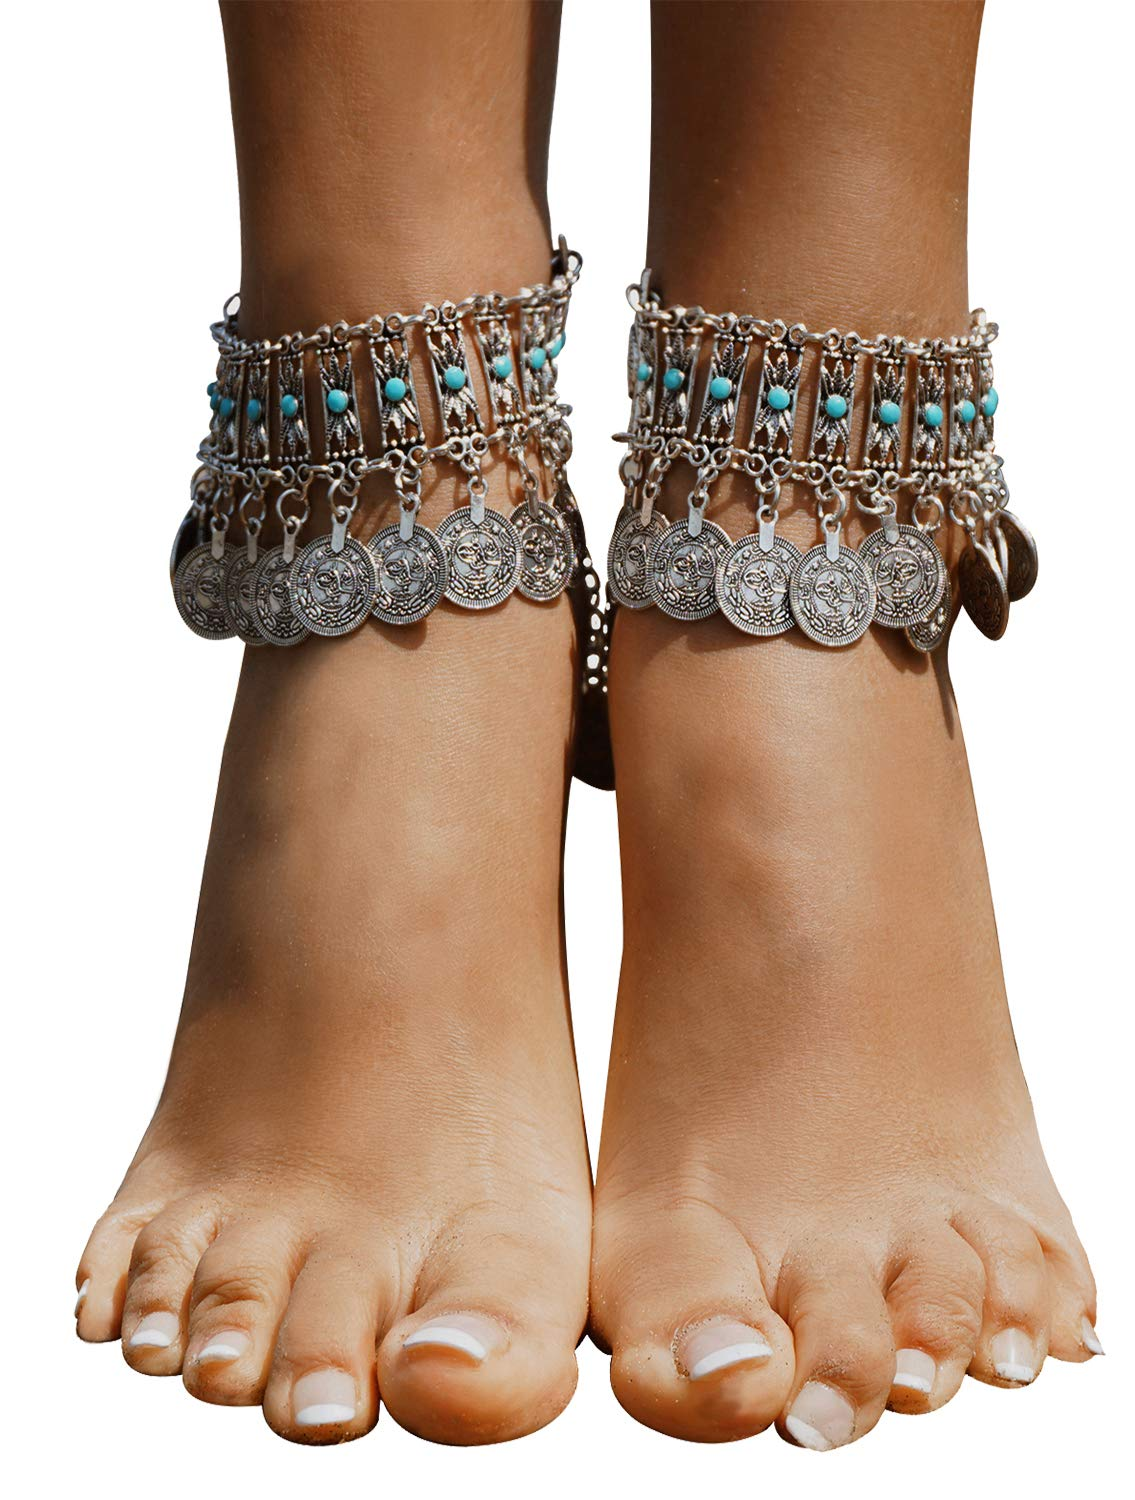 Bienvenu Vintage Style Coin Tassels Beach Ankle Chain Barefoot Sandal Beach Foot Jewelry,Silver_Style 5